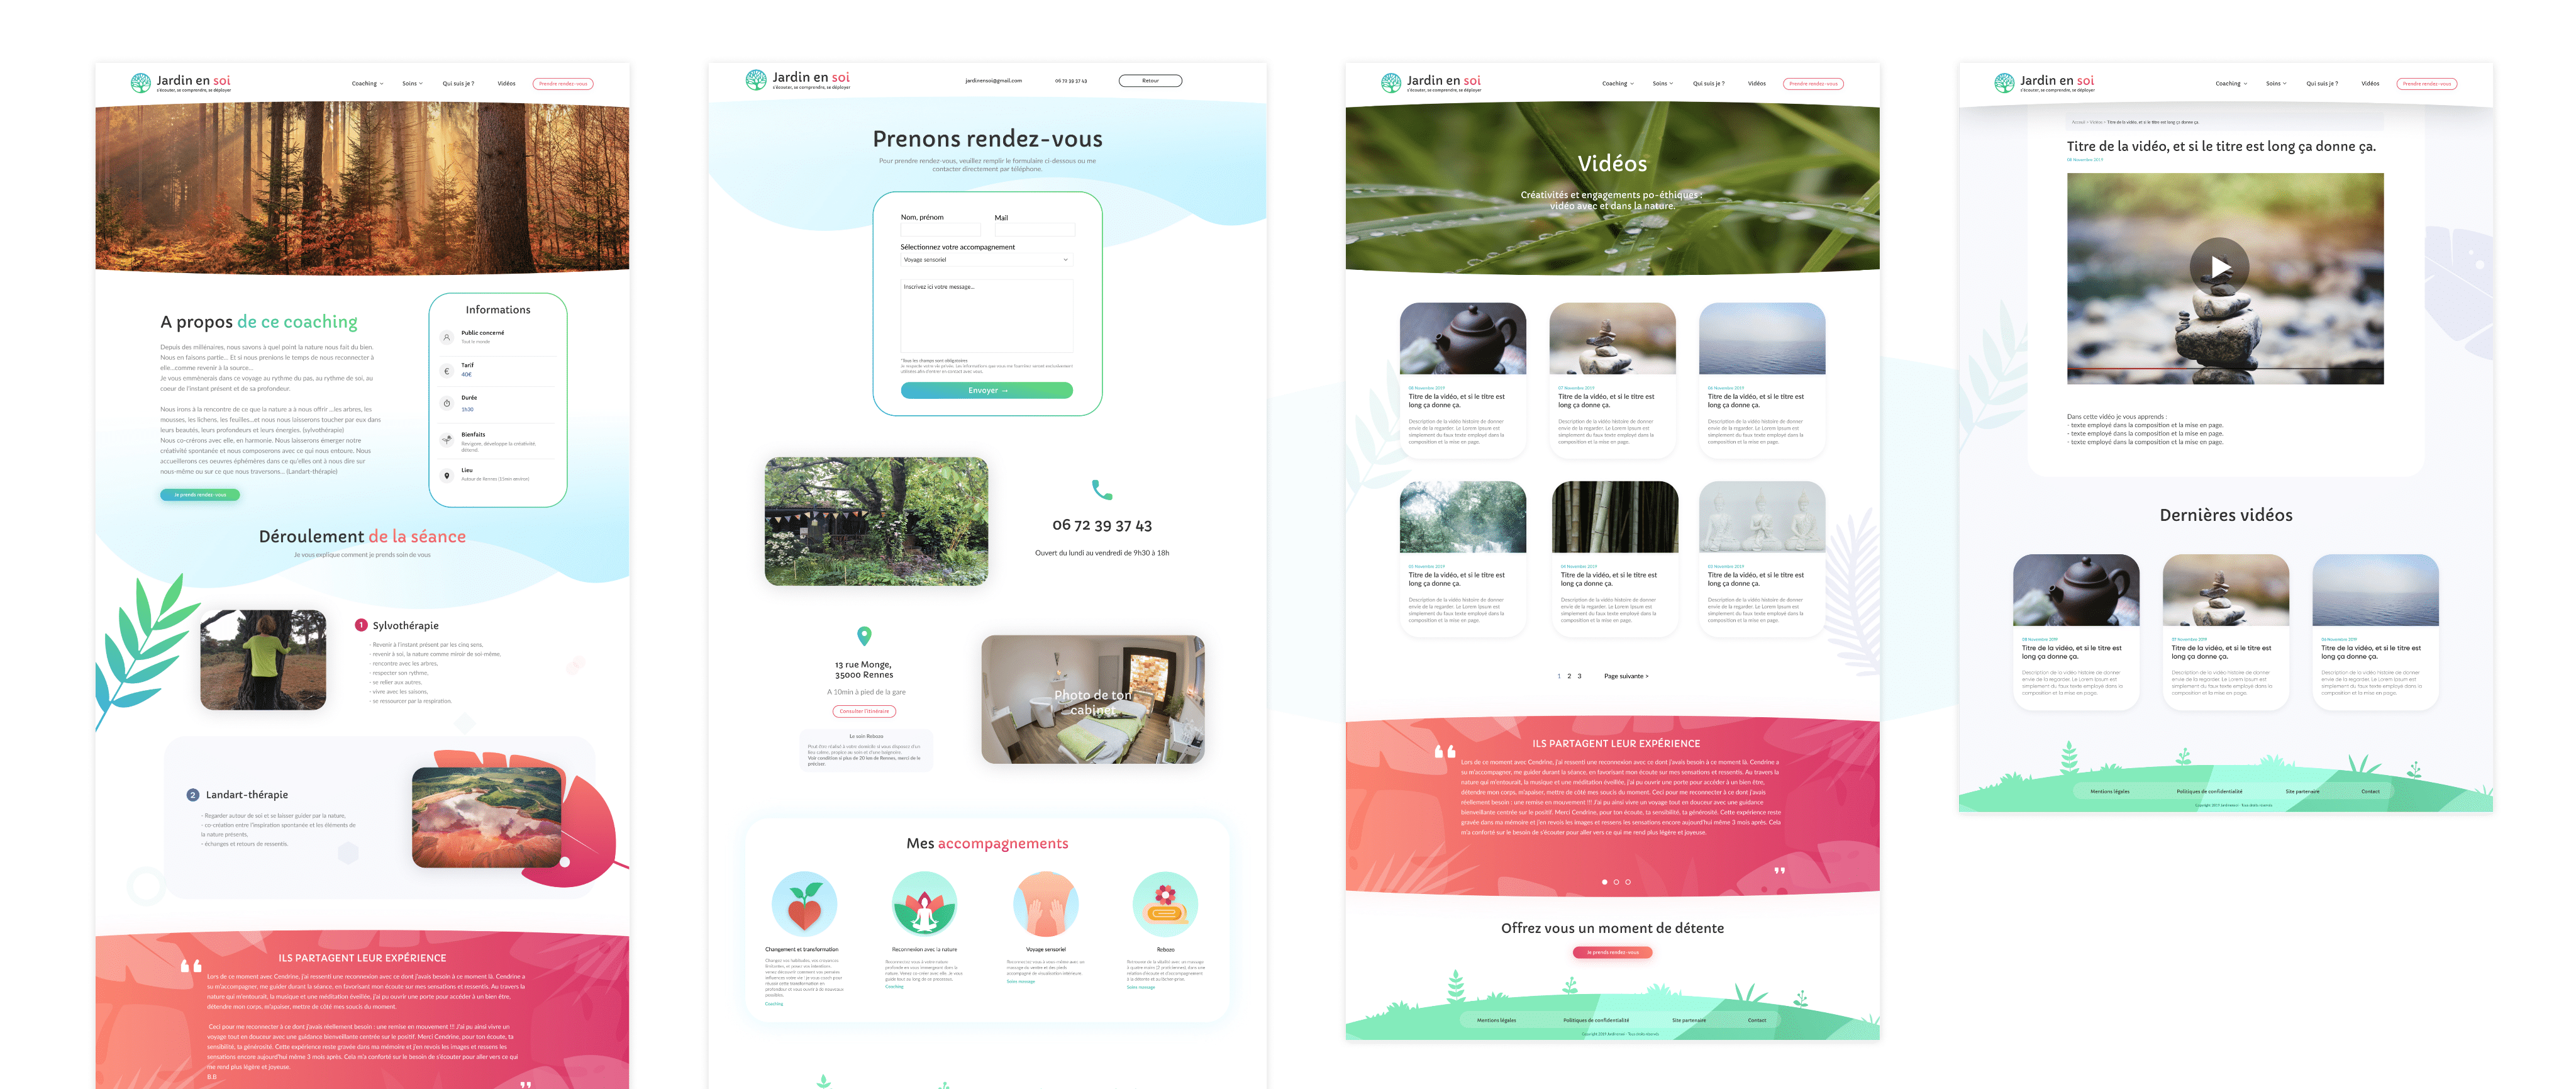 Web design du site wordpress jardinensoi